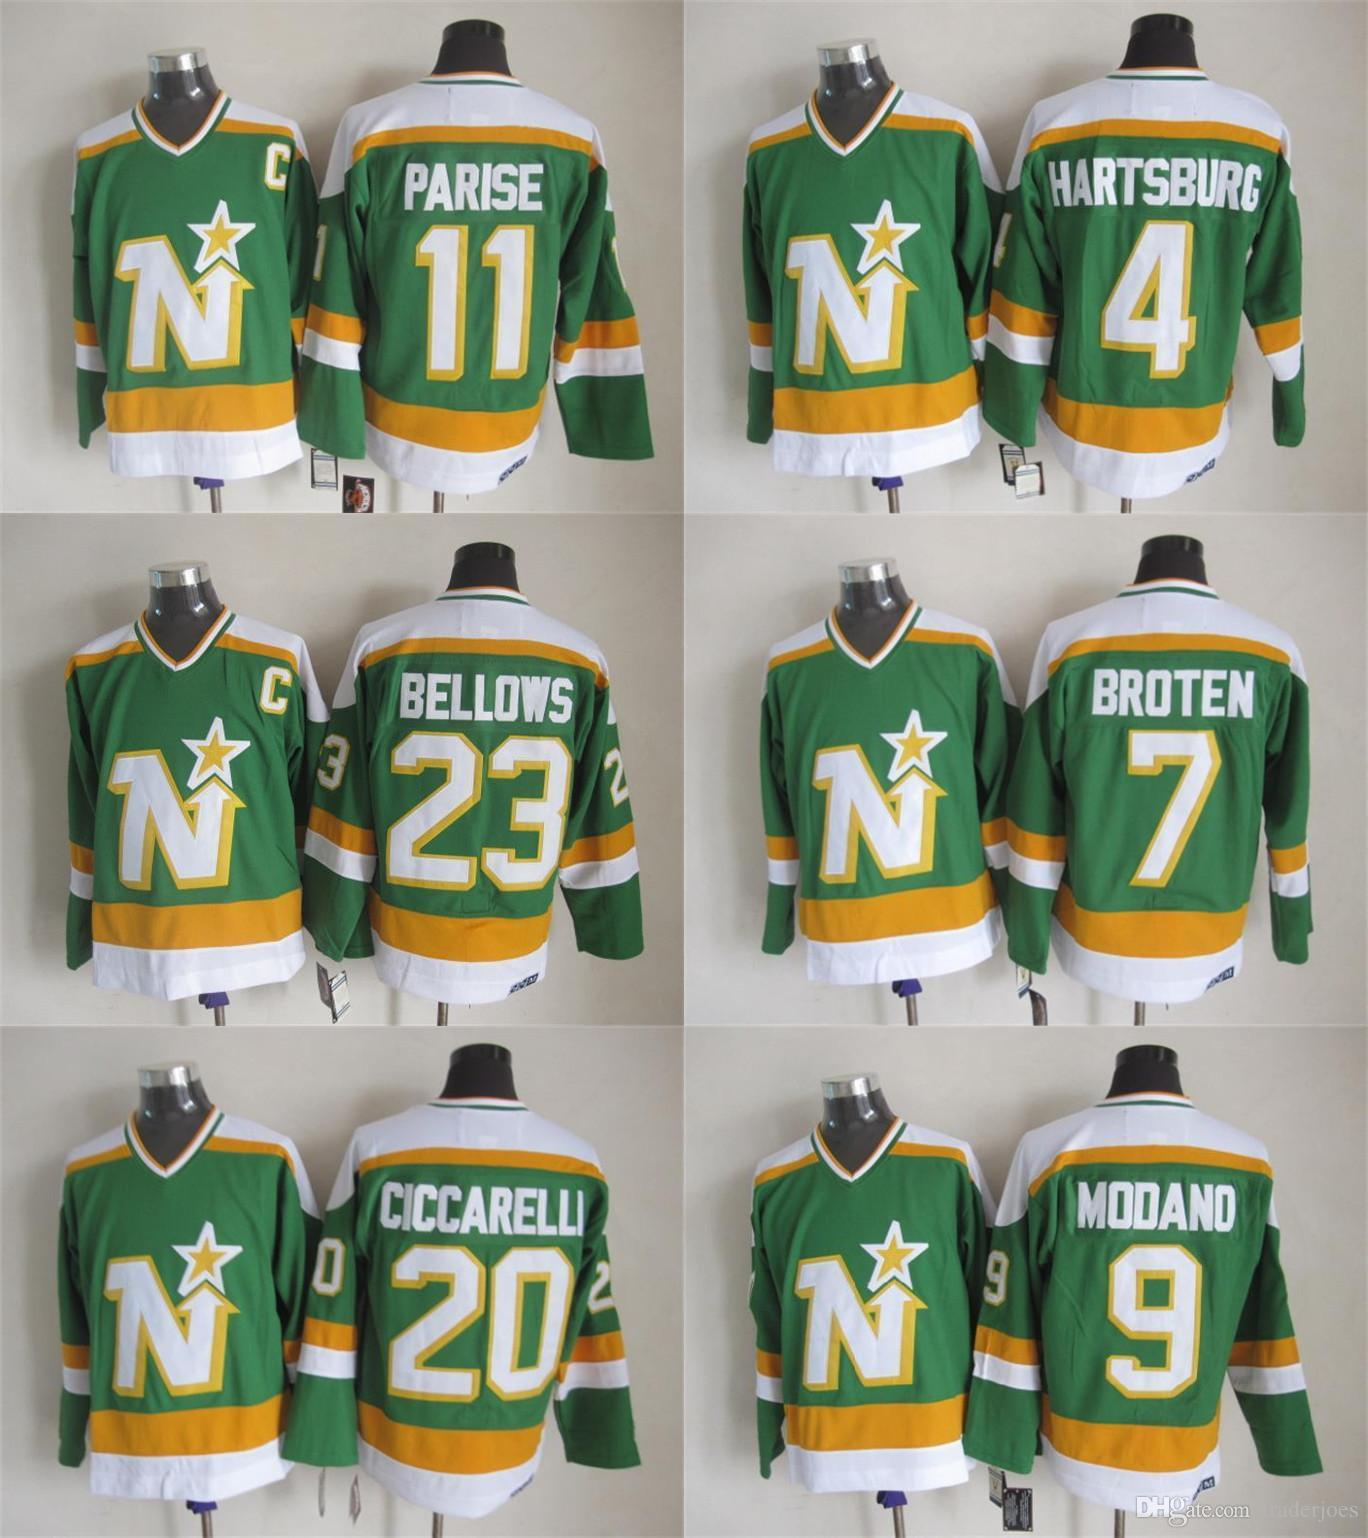 ... White jersey 2017 Mens Dallas Stars Jerseys Ice Hockey Jerseys 9 Modano  7 Neal Broten 11 Mike Gartner ... 3e8956f73